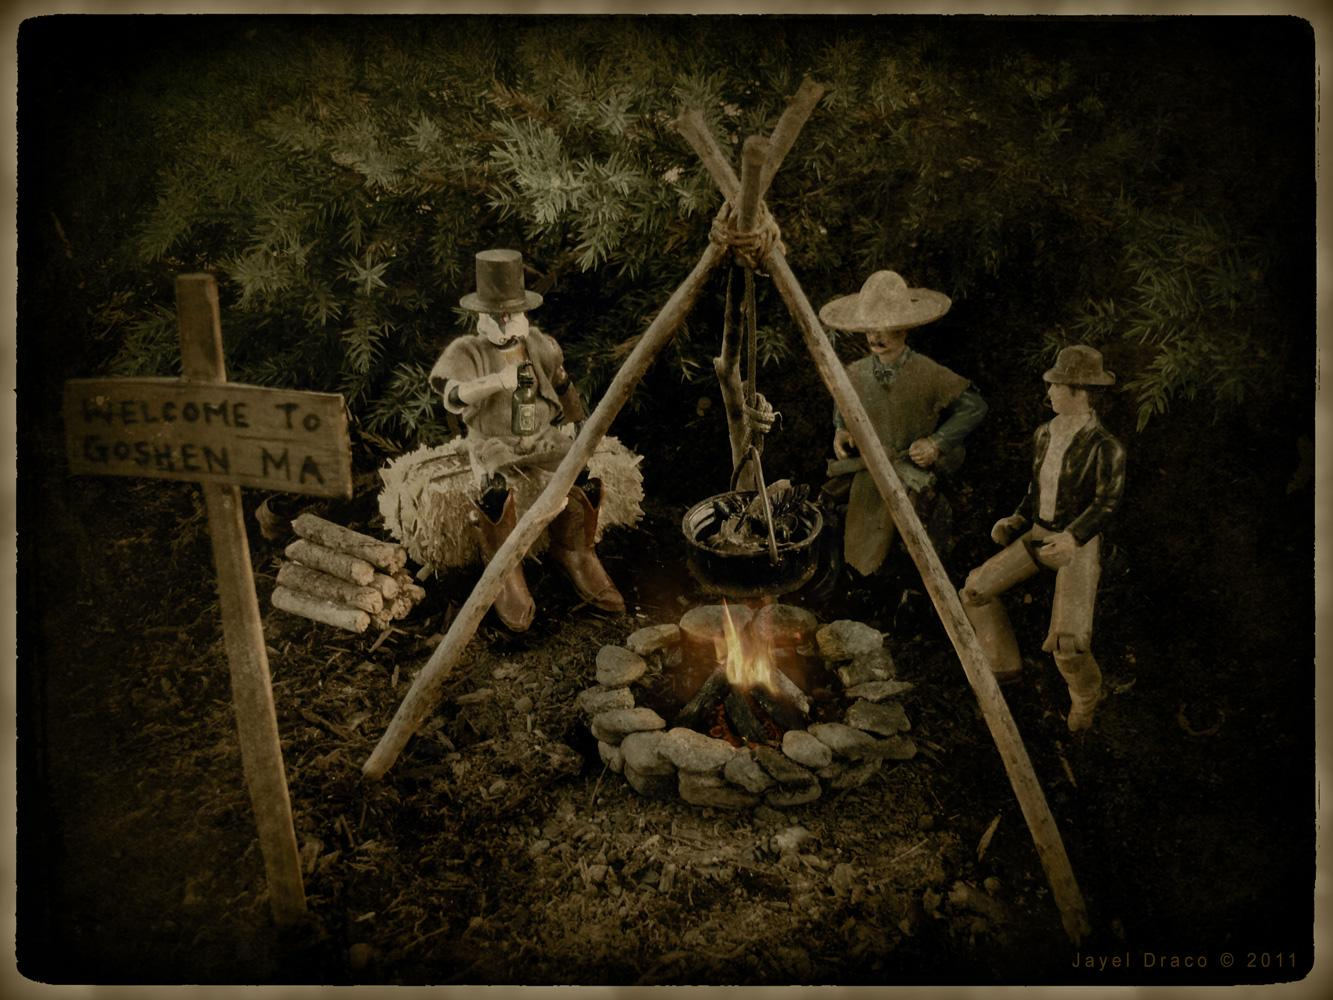 HOBO CAMP DISTRESSED - Miniatures, Photography, and Photomanipulation by Jayel Draco